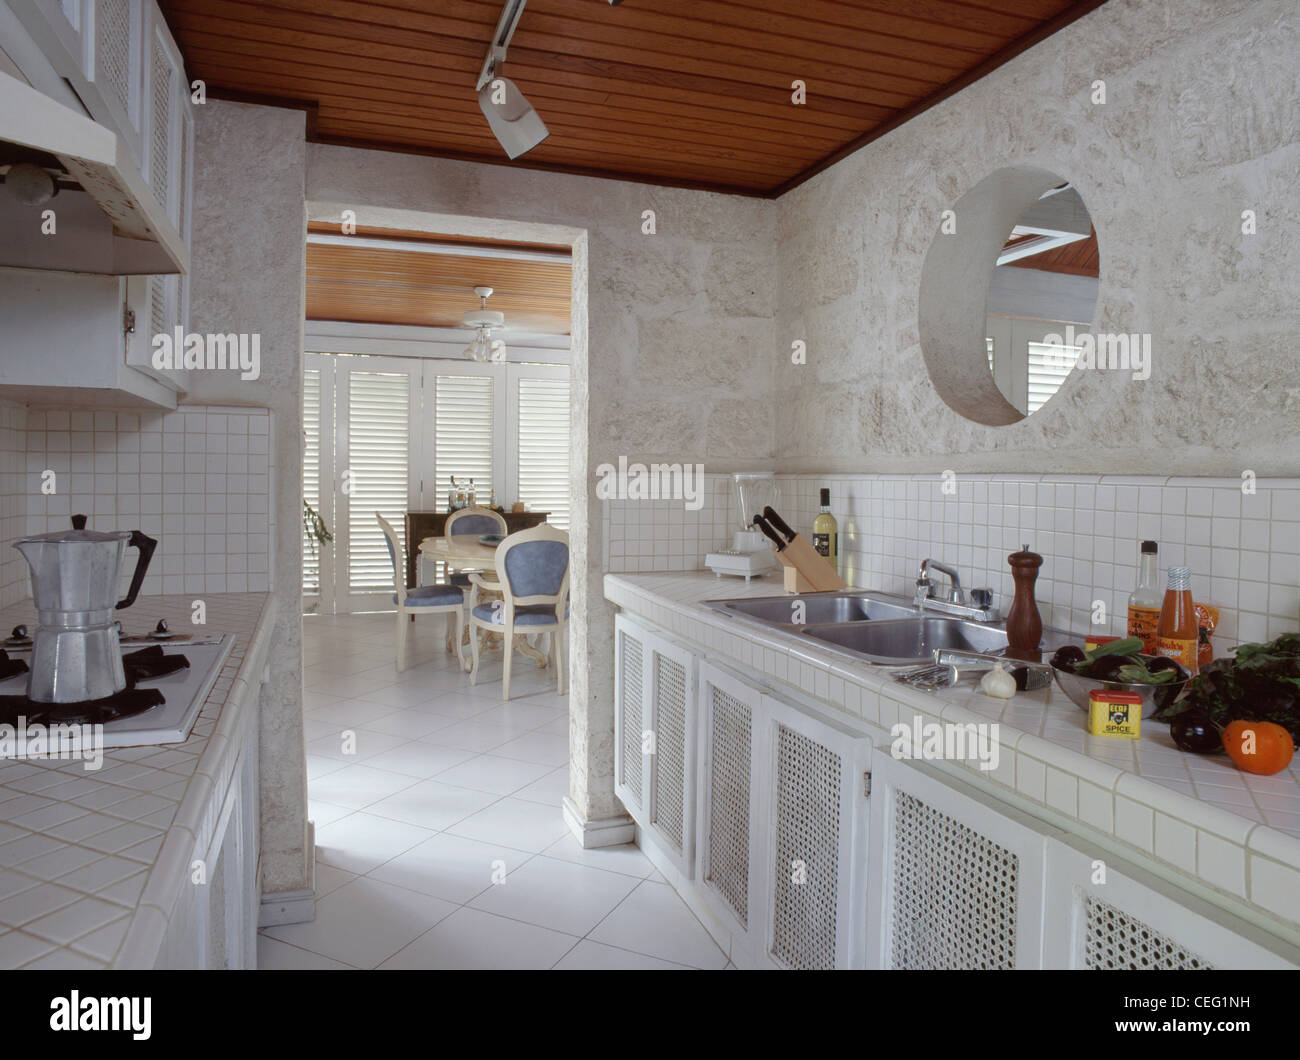 Circular internal window above sink in modern galley kitchen with circular internal window above sink in modern galley kitchen with white ceramic floor tiles and view of dining room dailygadgetfo Image collections